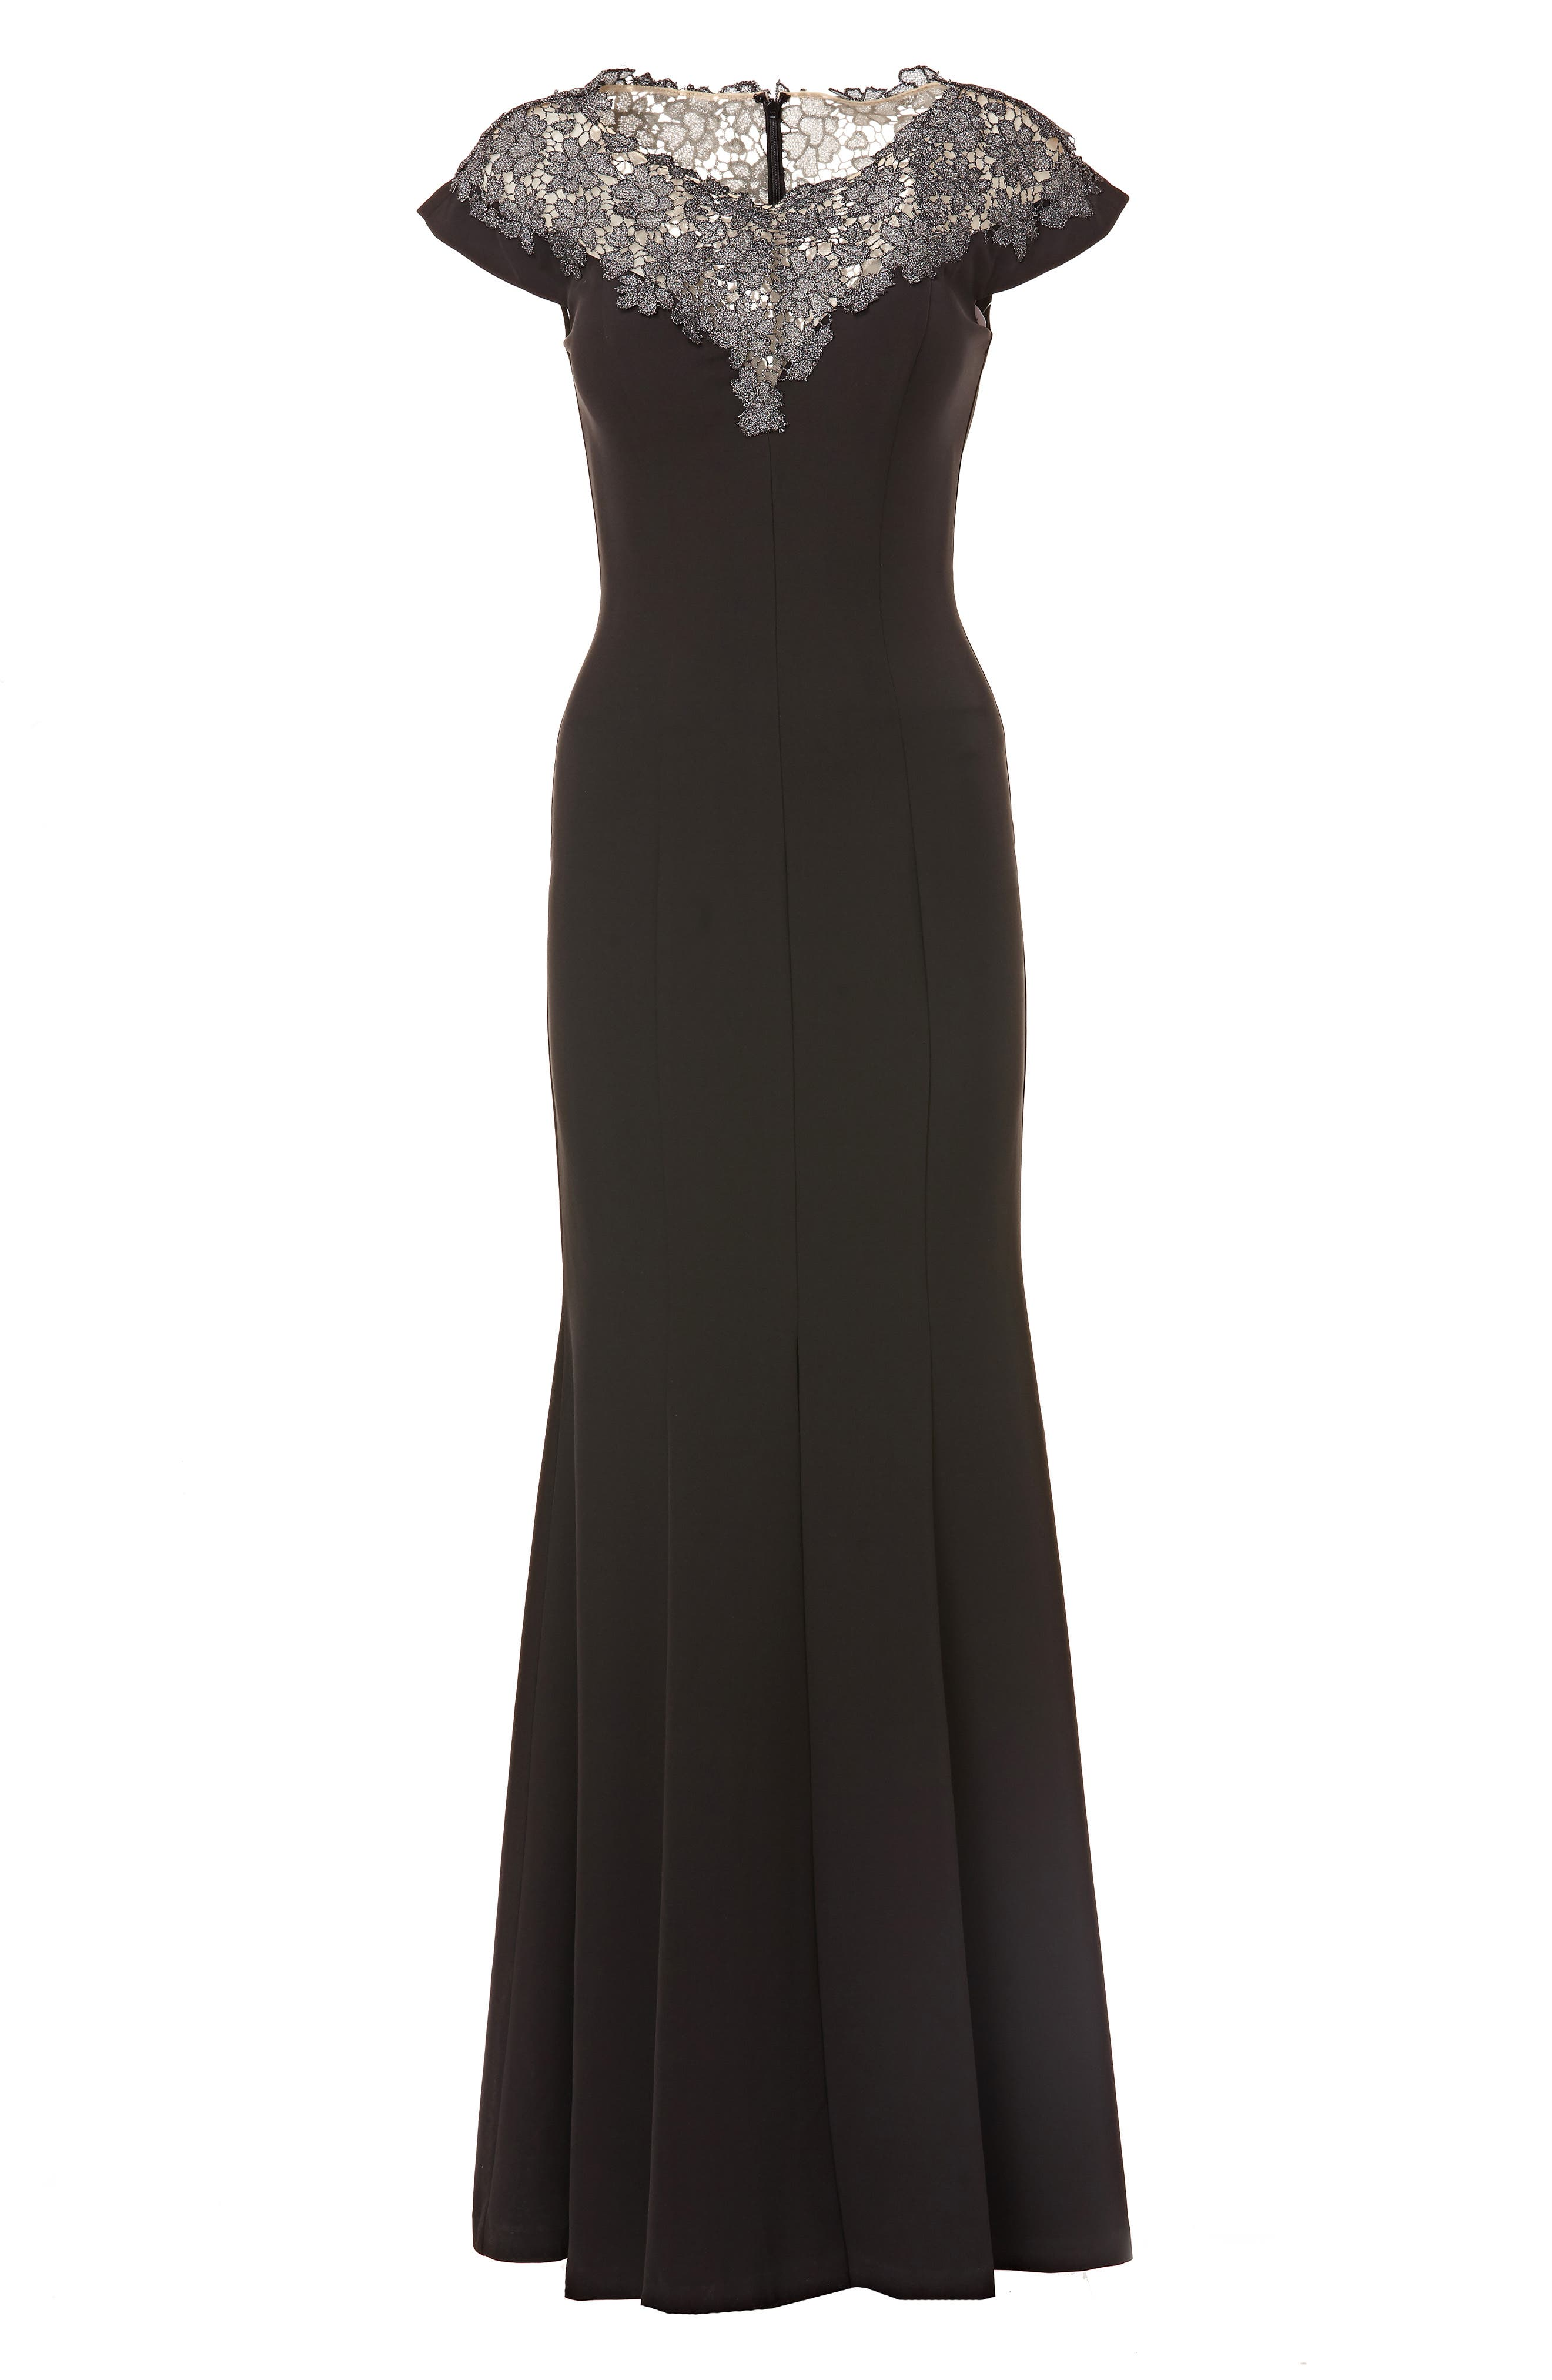 JS COLLECTIONS,                             Lace Yoke Crepe Trumpet Gown,                             Alternate thumbnail 3, color,                             BLACK